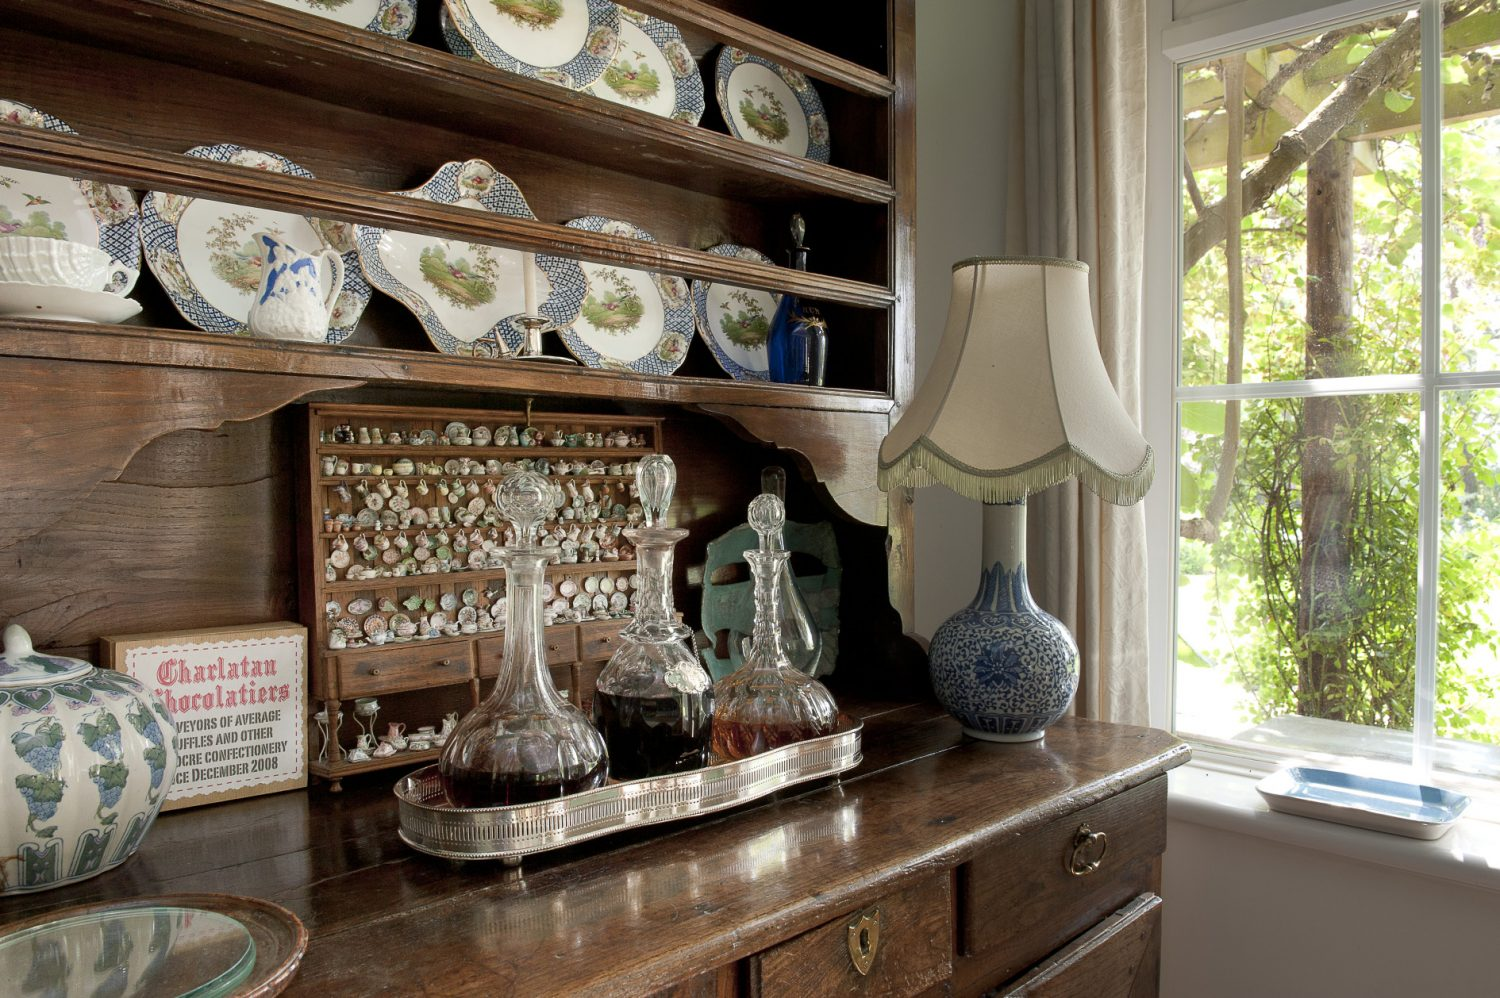 A miniature wooden dresser, filled with Jenny's doll's house pottery stands centre stage amongst the full-size crockery in the drawing room